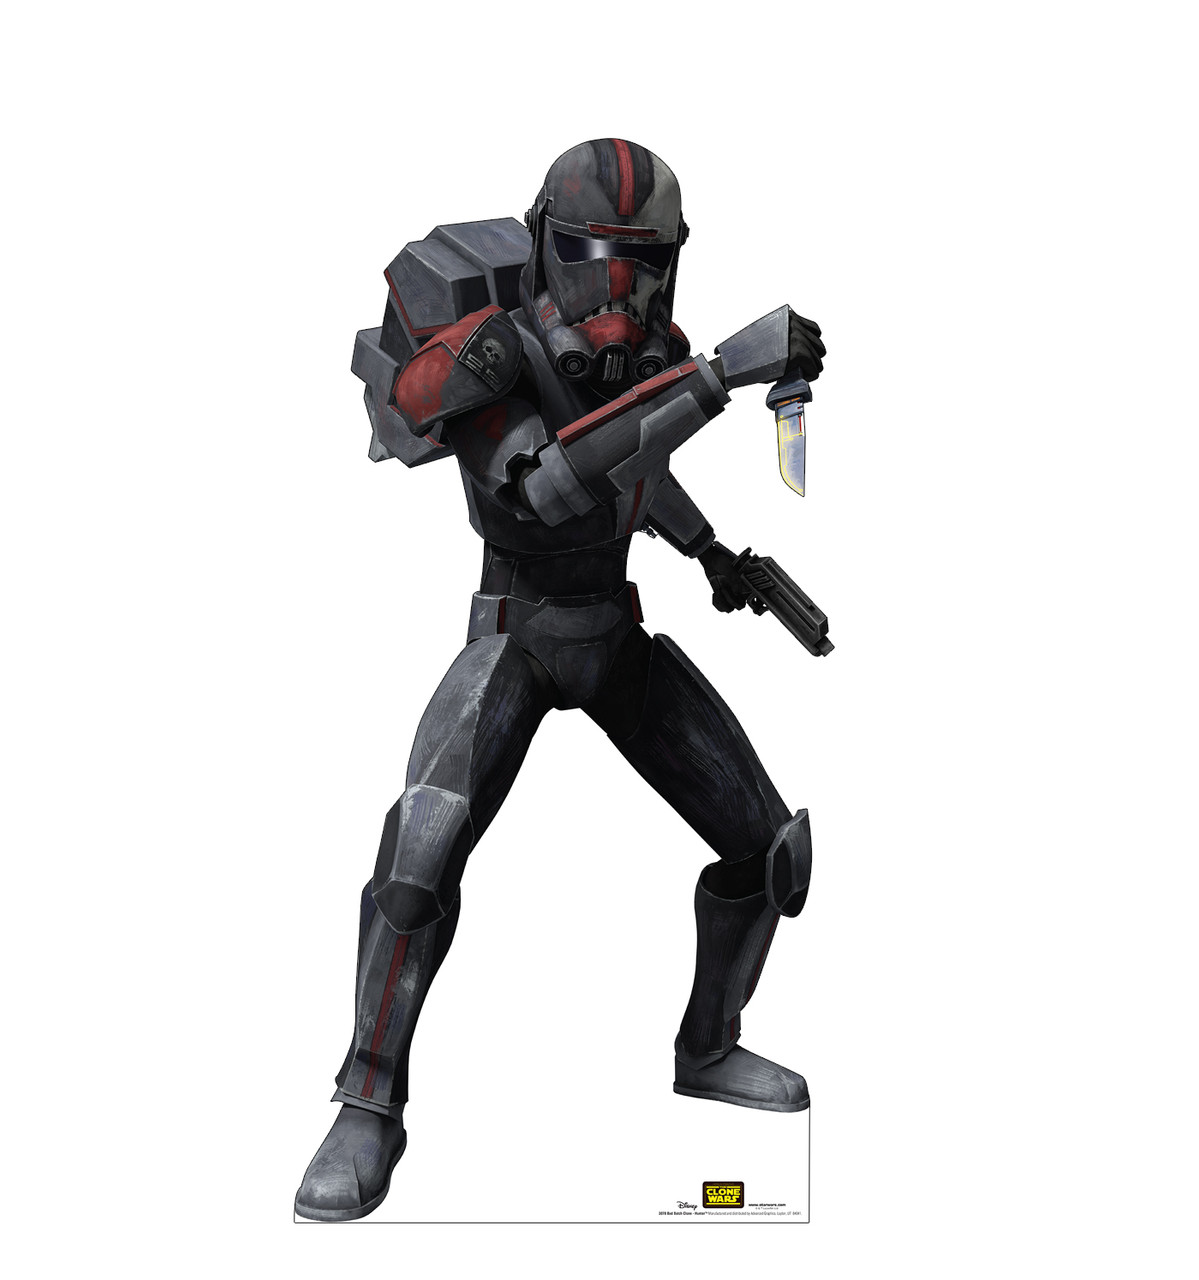 Life-size cardboard standee of the character Bad Batch Clone Hunter from Clone Wars Season 7.